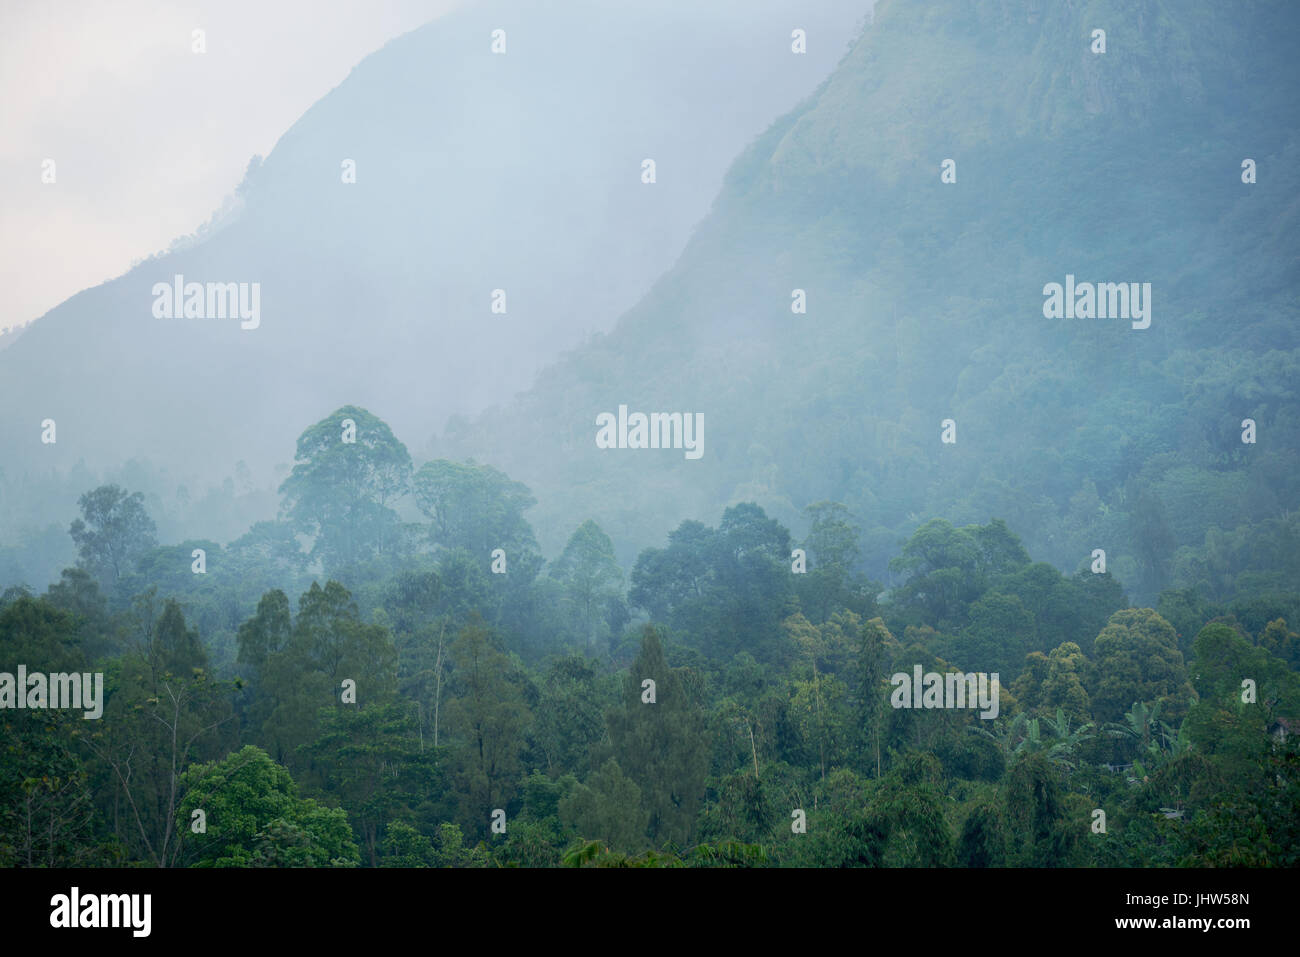 Cloud forest in Mount Bromo Java Indonesia. - Stock Image